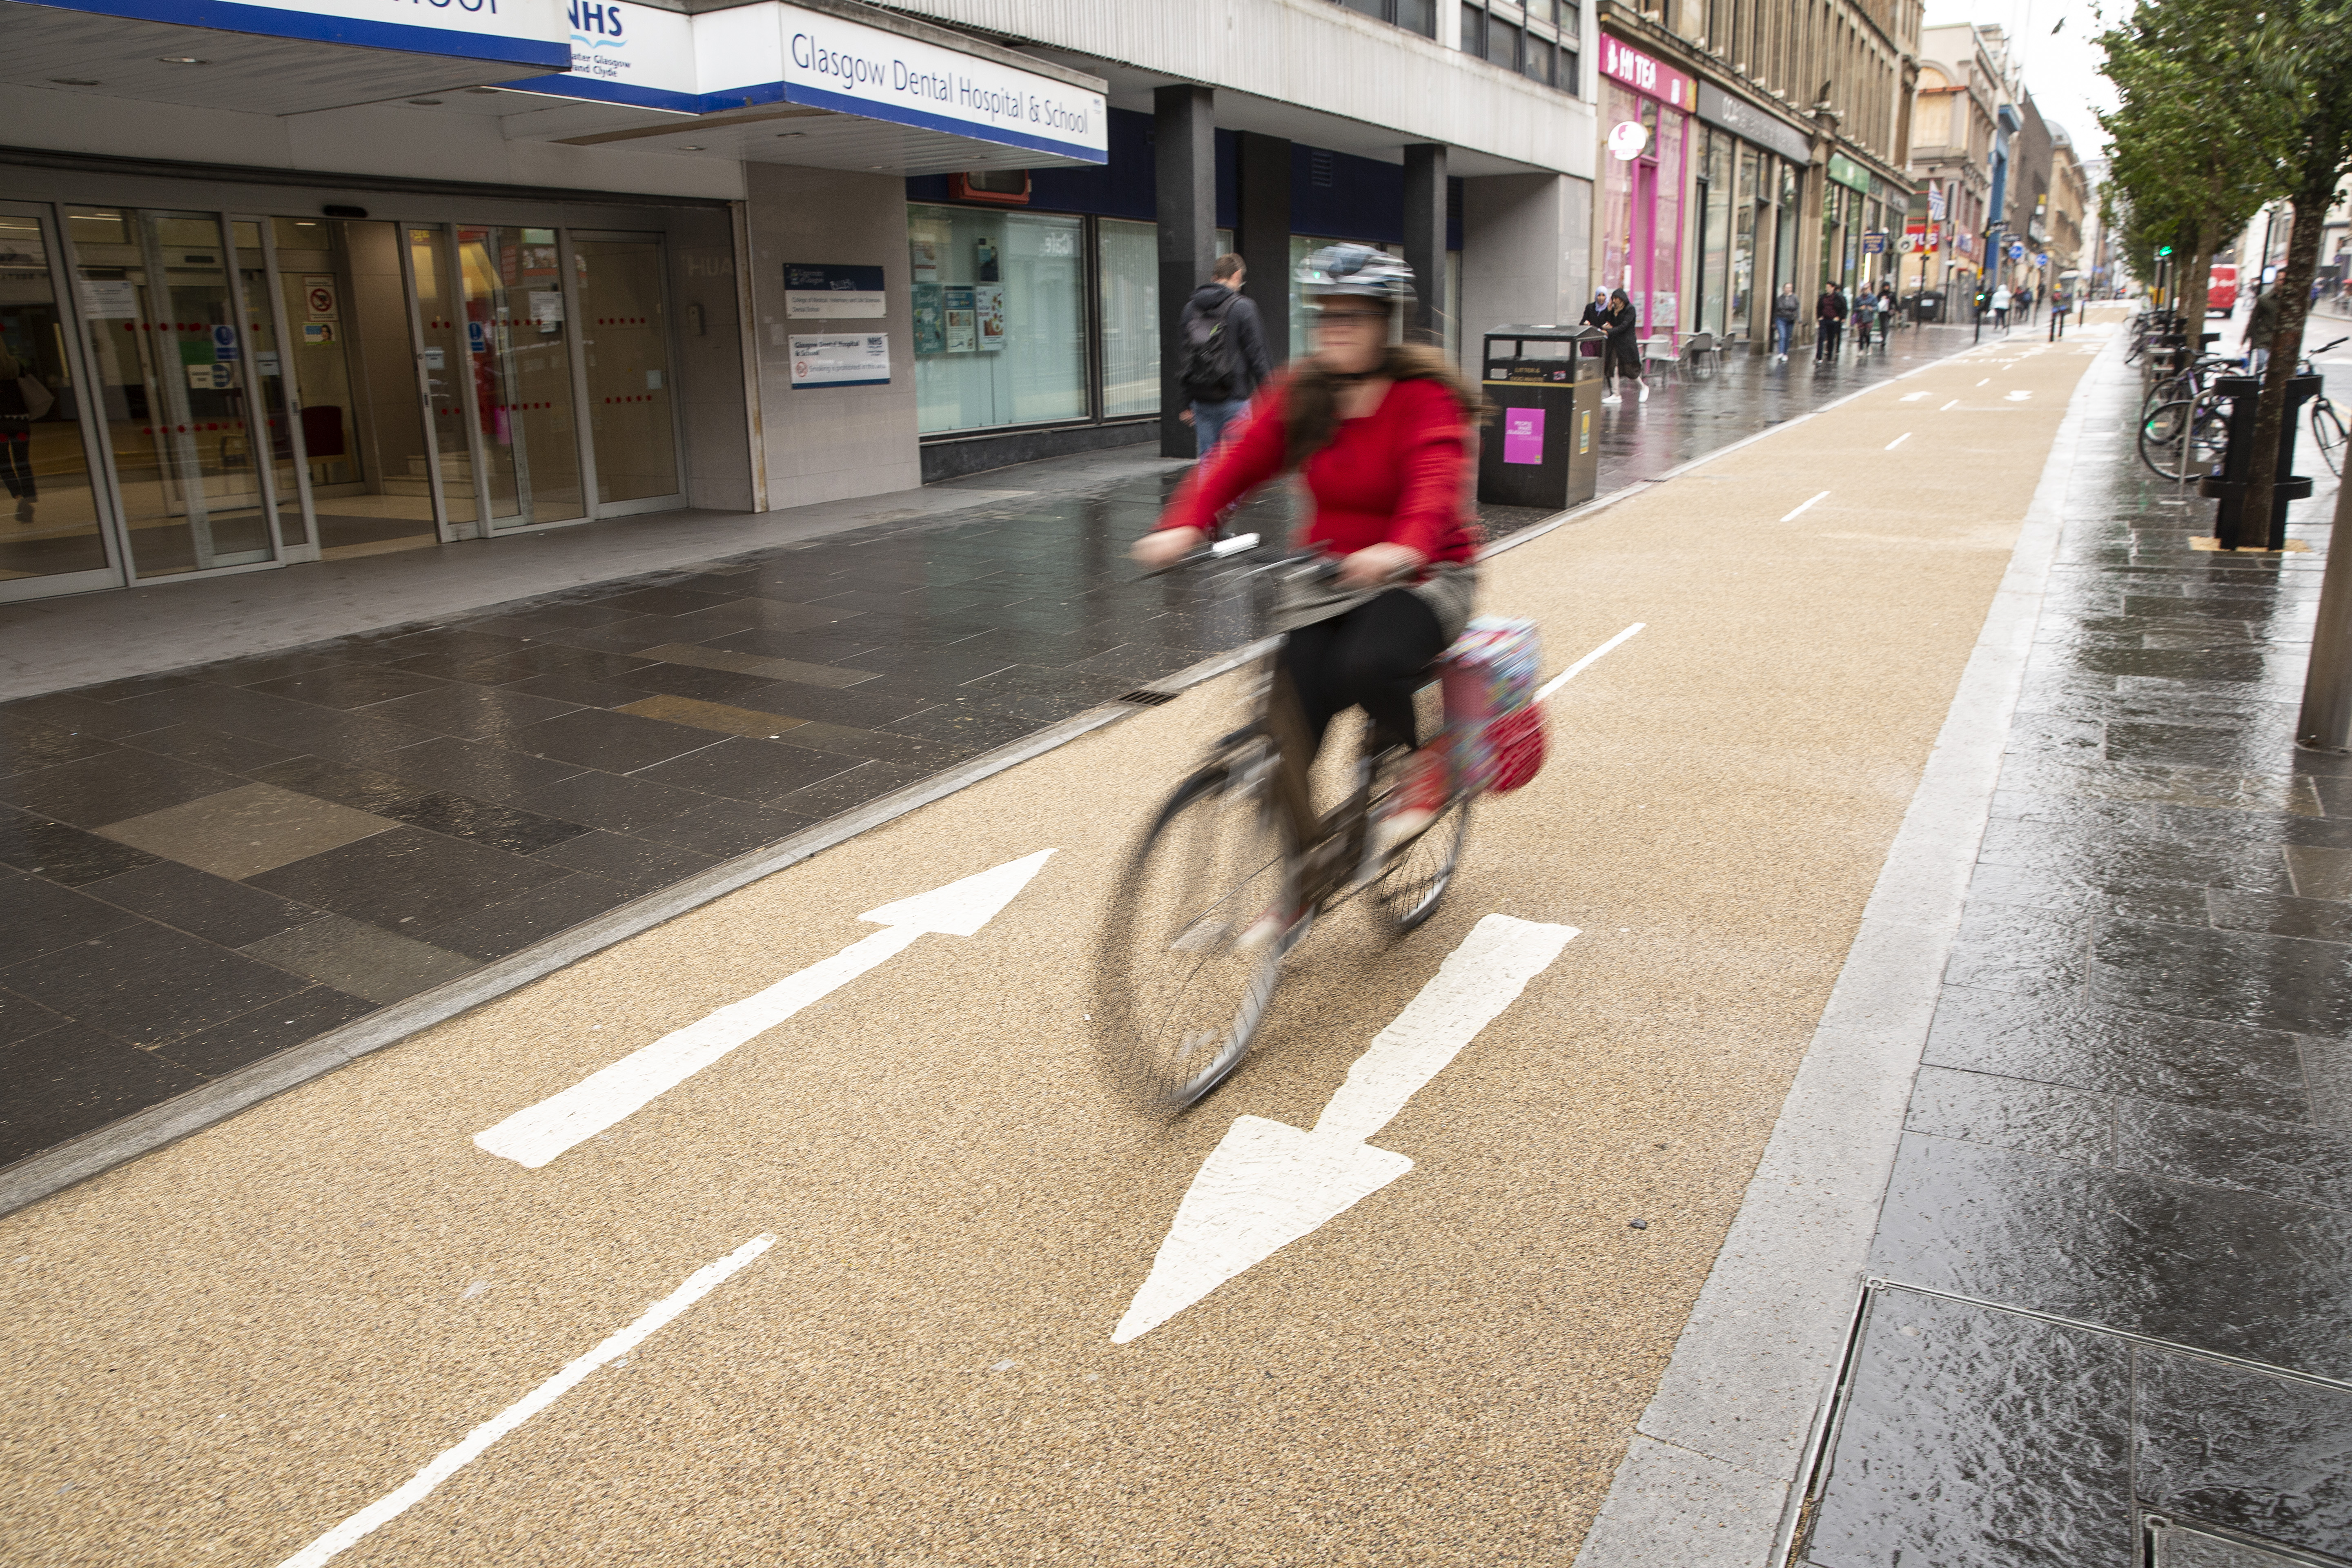 The council is investing in cycling and walking improvements